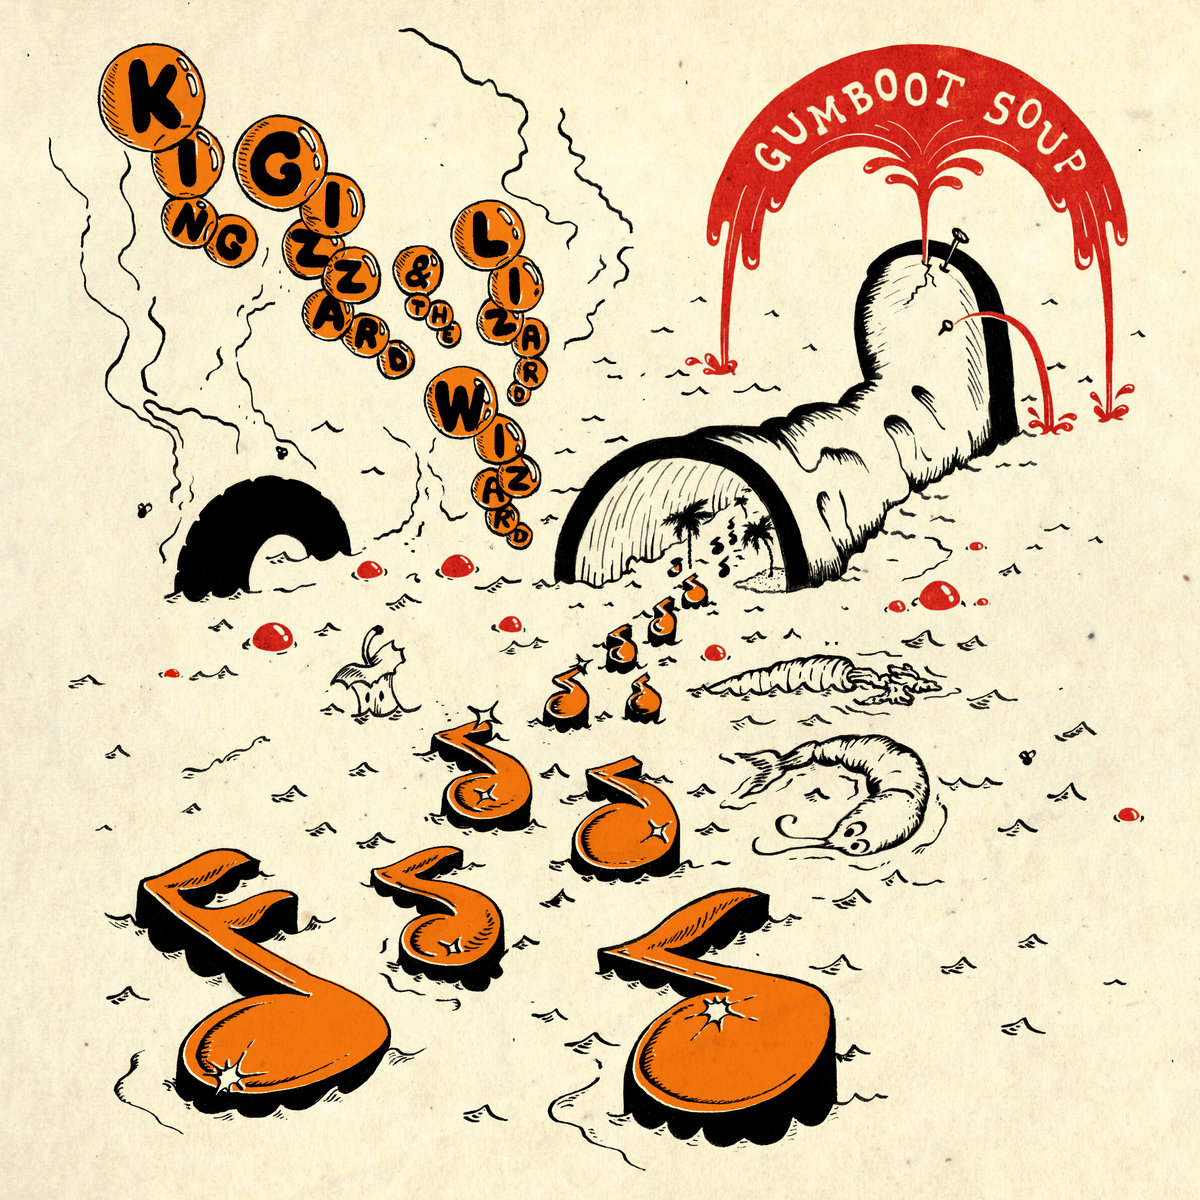 King Gizzard & the Lizard Wizard Gumboot Soup